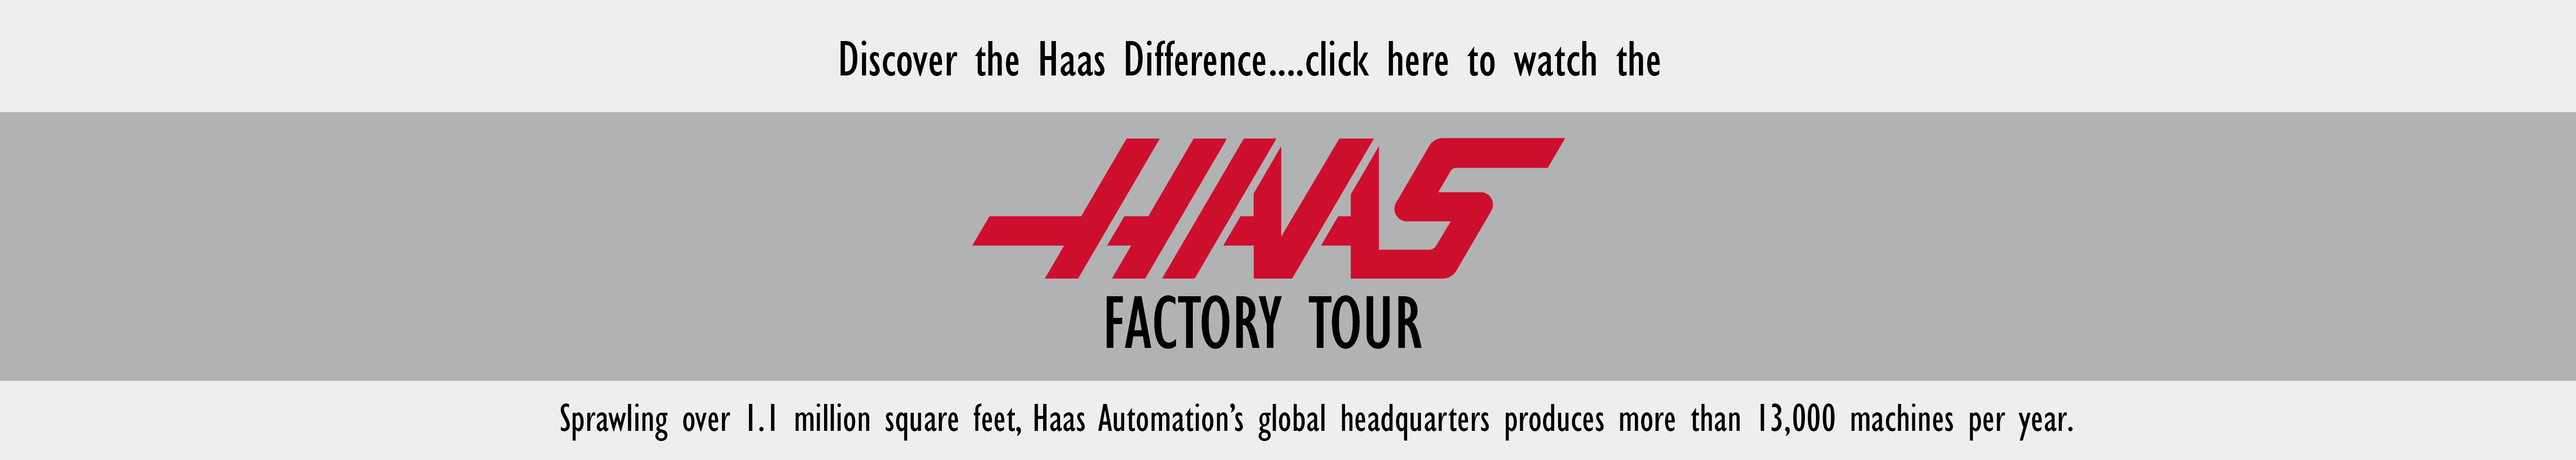 Take the Haas Factory Tour